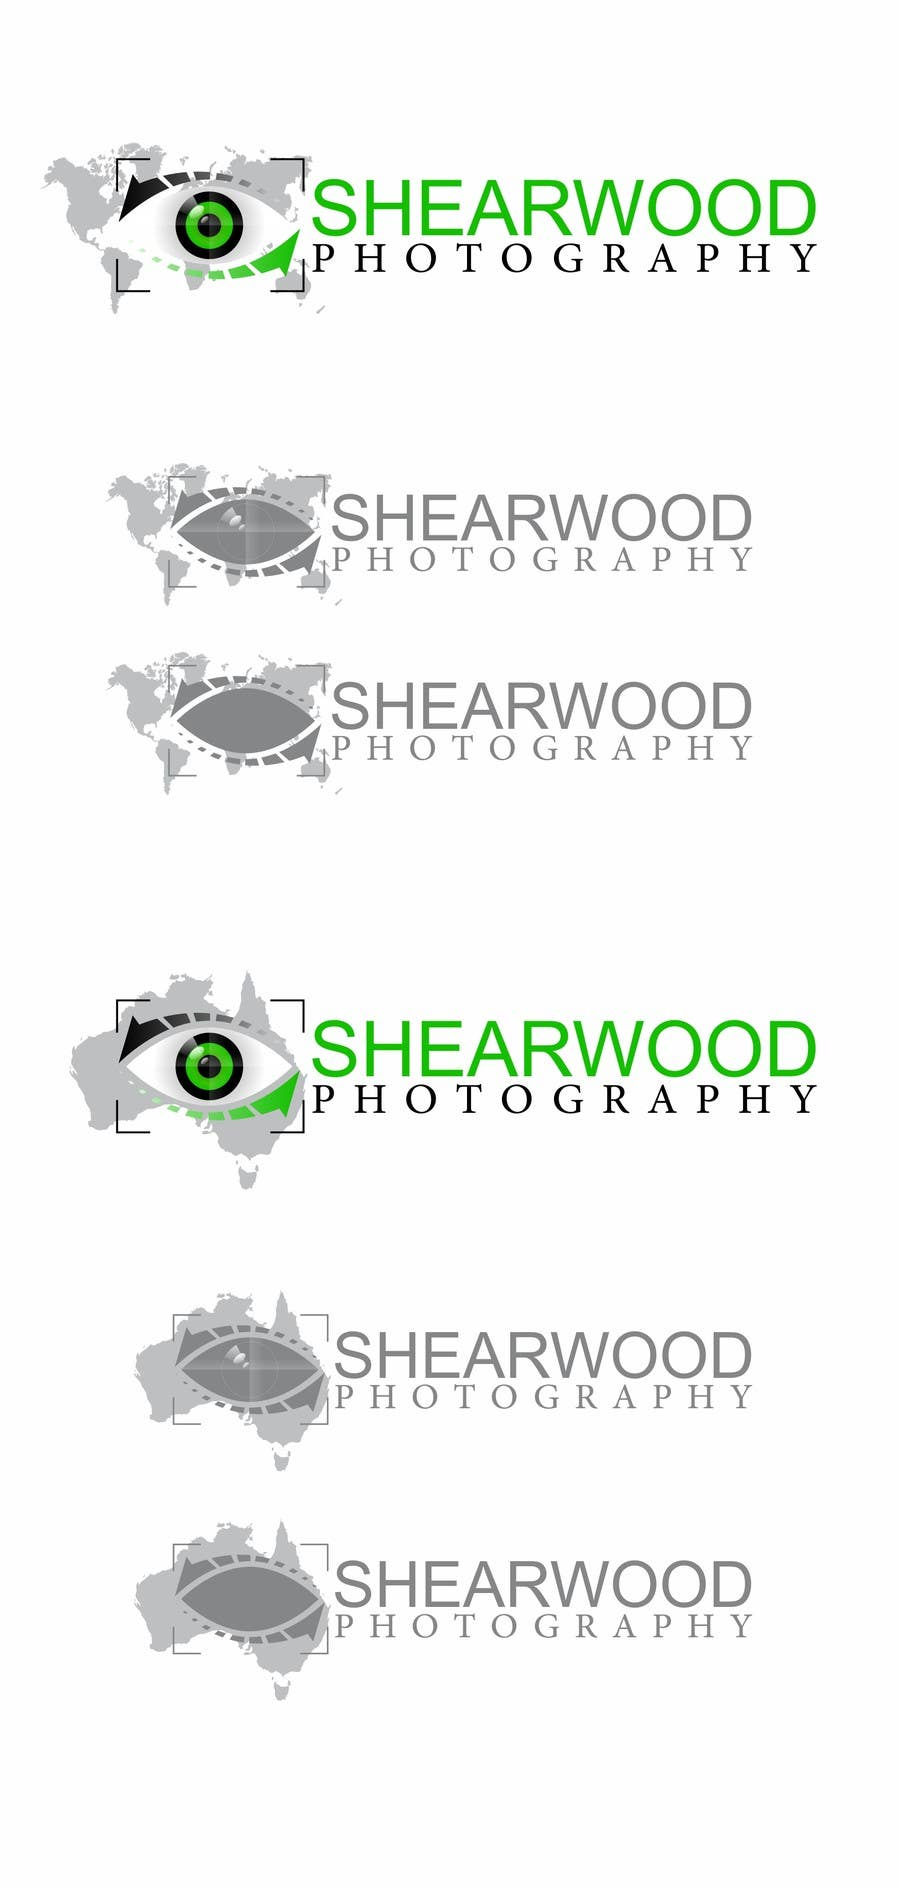 #157 for Design a Logo for Shearwood Photography by airbrusheskid